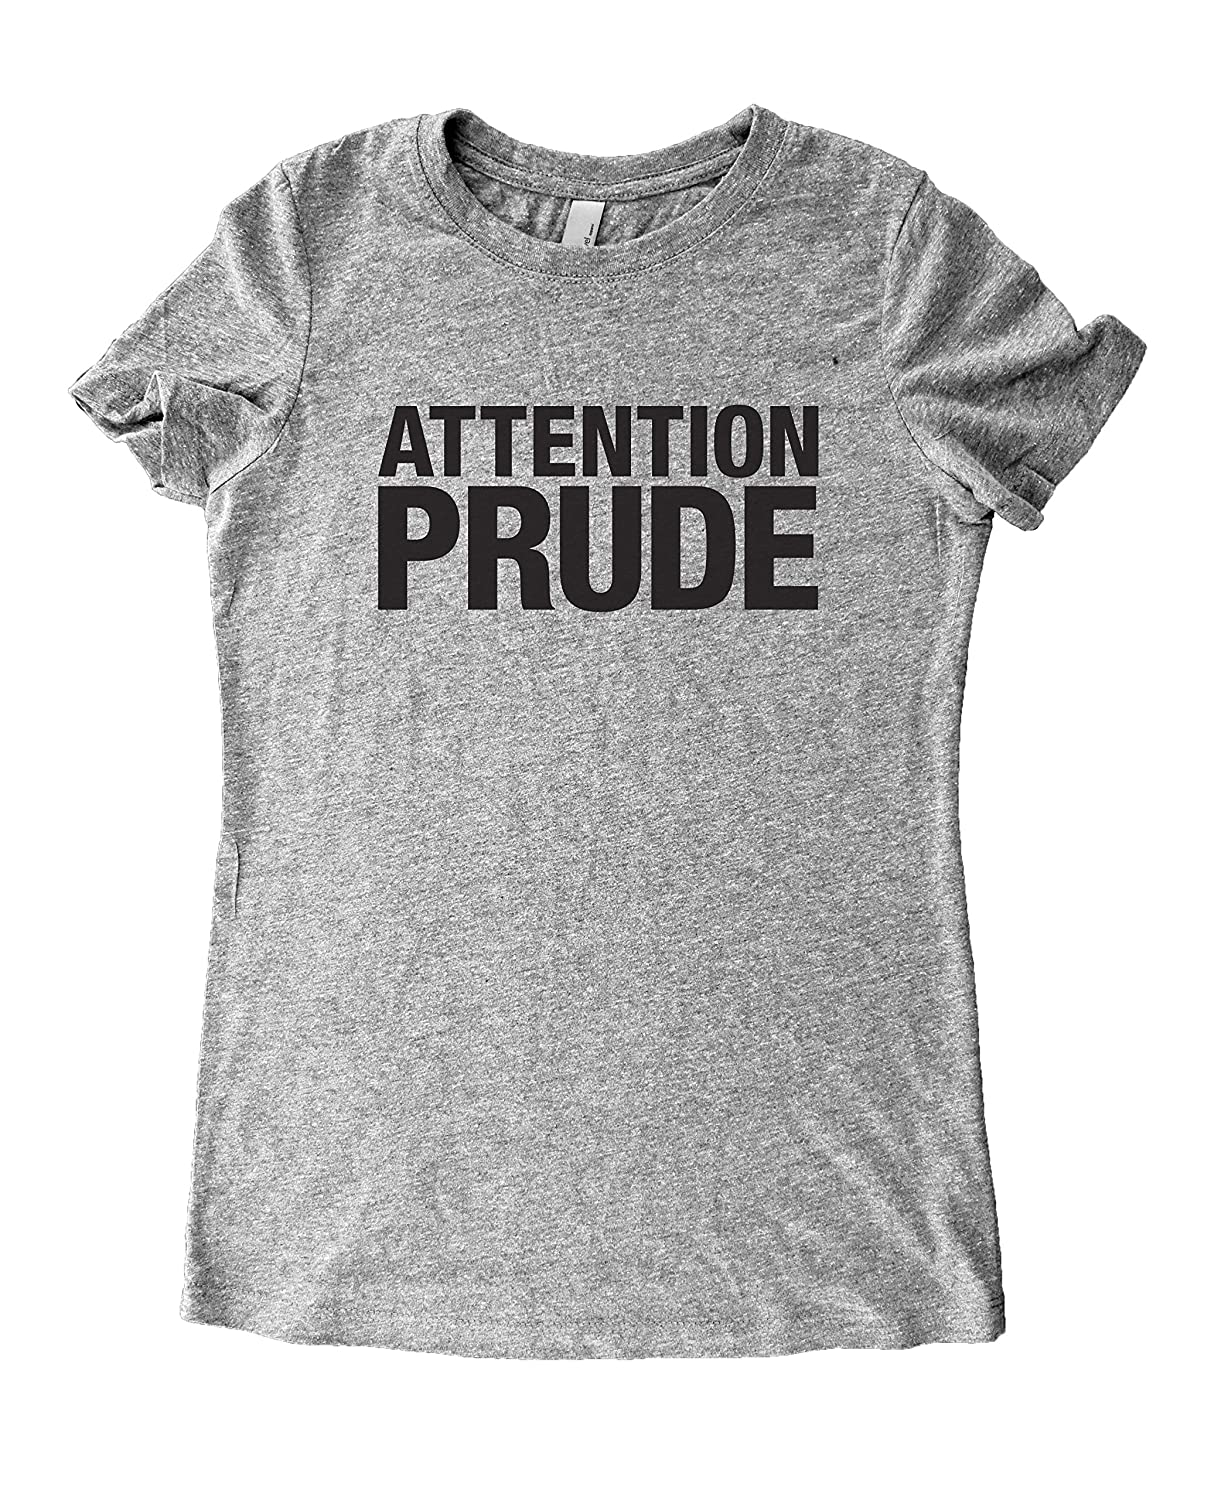 6129ba22a Amazon.com: Sarcastic Shirts For Women / Attention Prude - Women's  Tri-Blend T-Shirt, Grey: Clothing